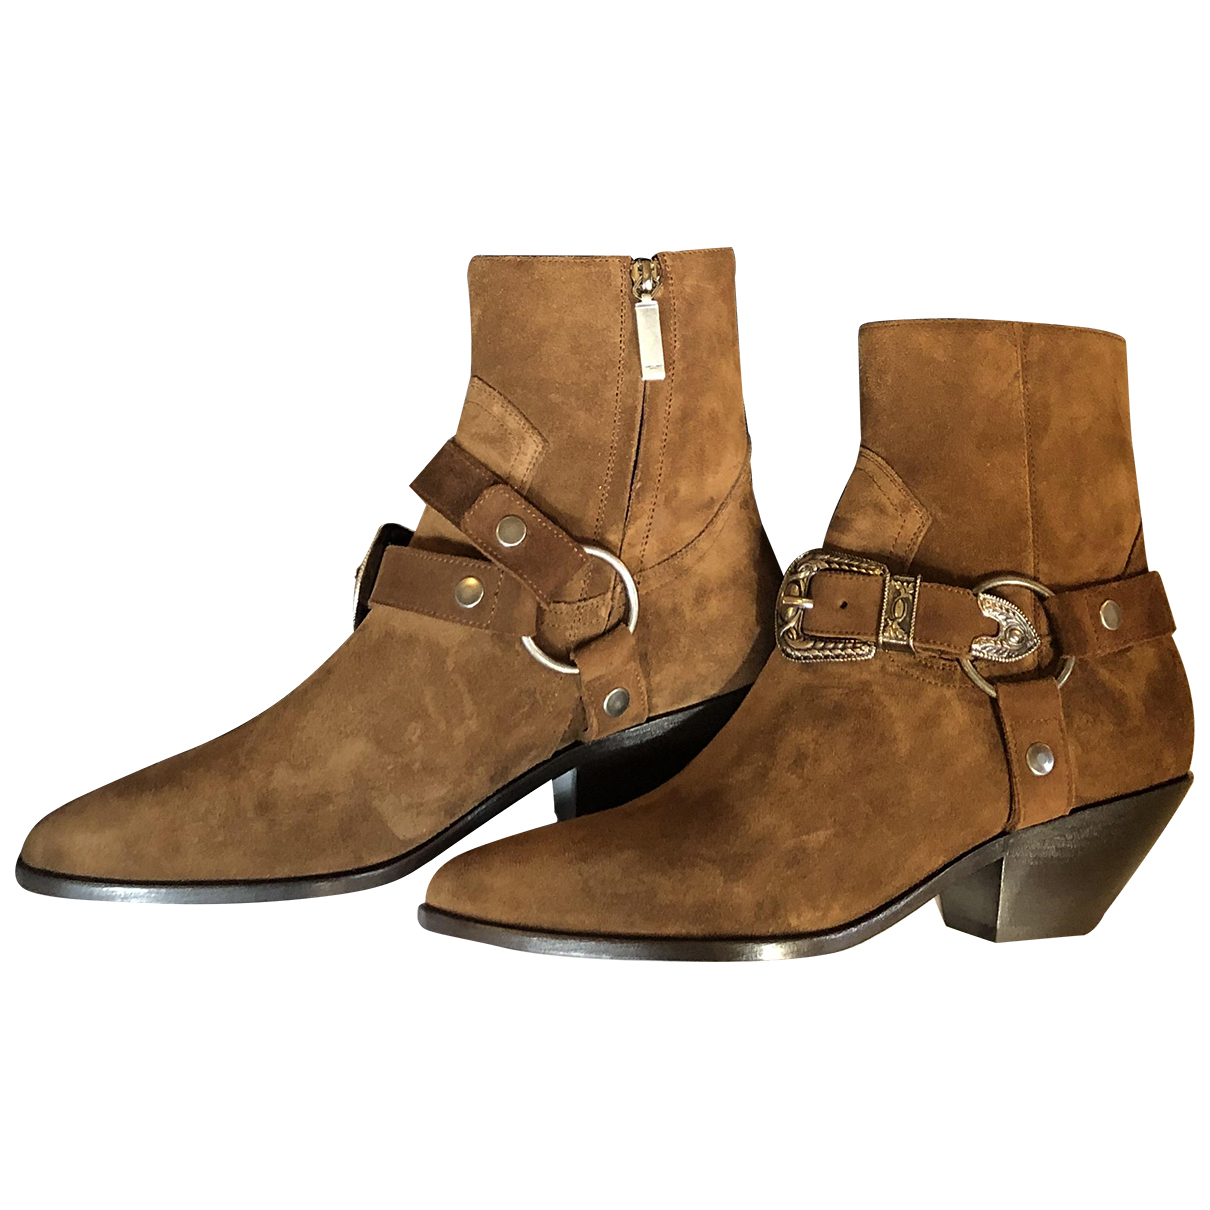 Saint Laurent N Brown Leather Ankle boots for Women 39 EU